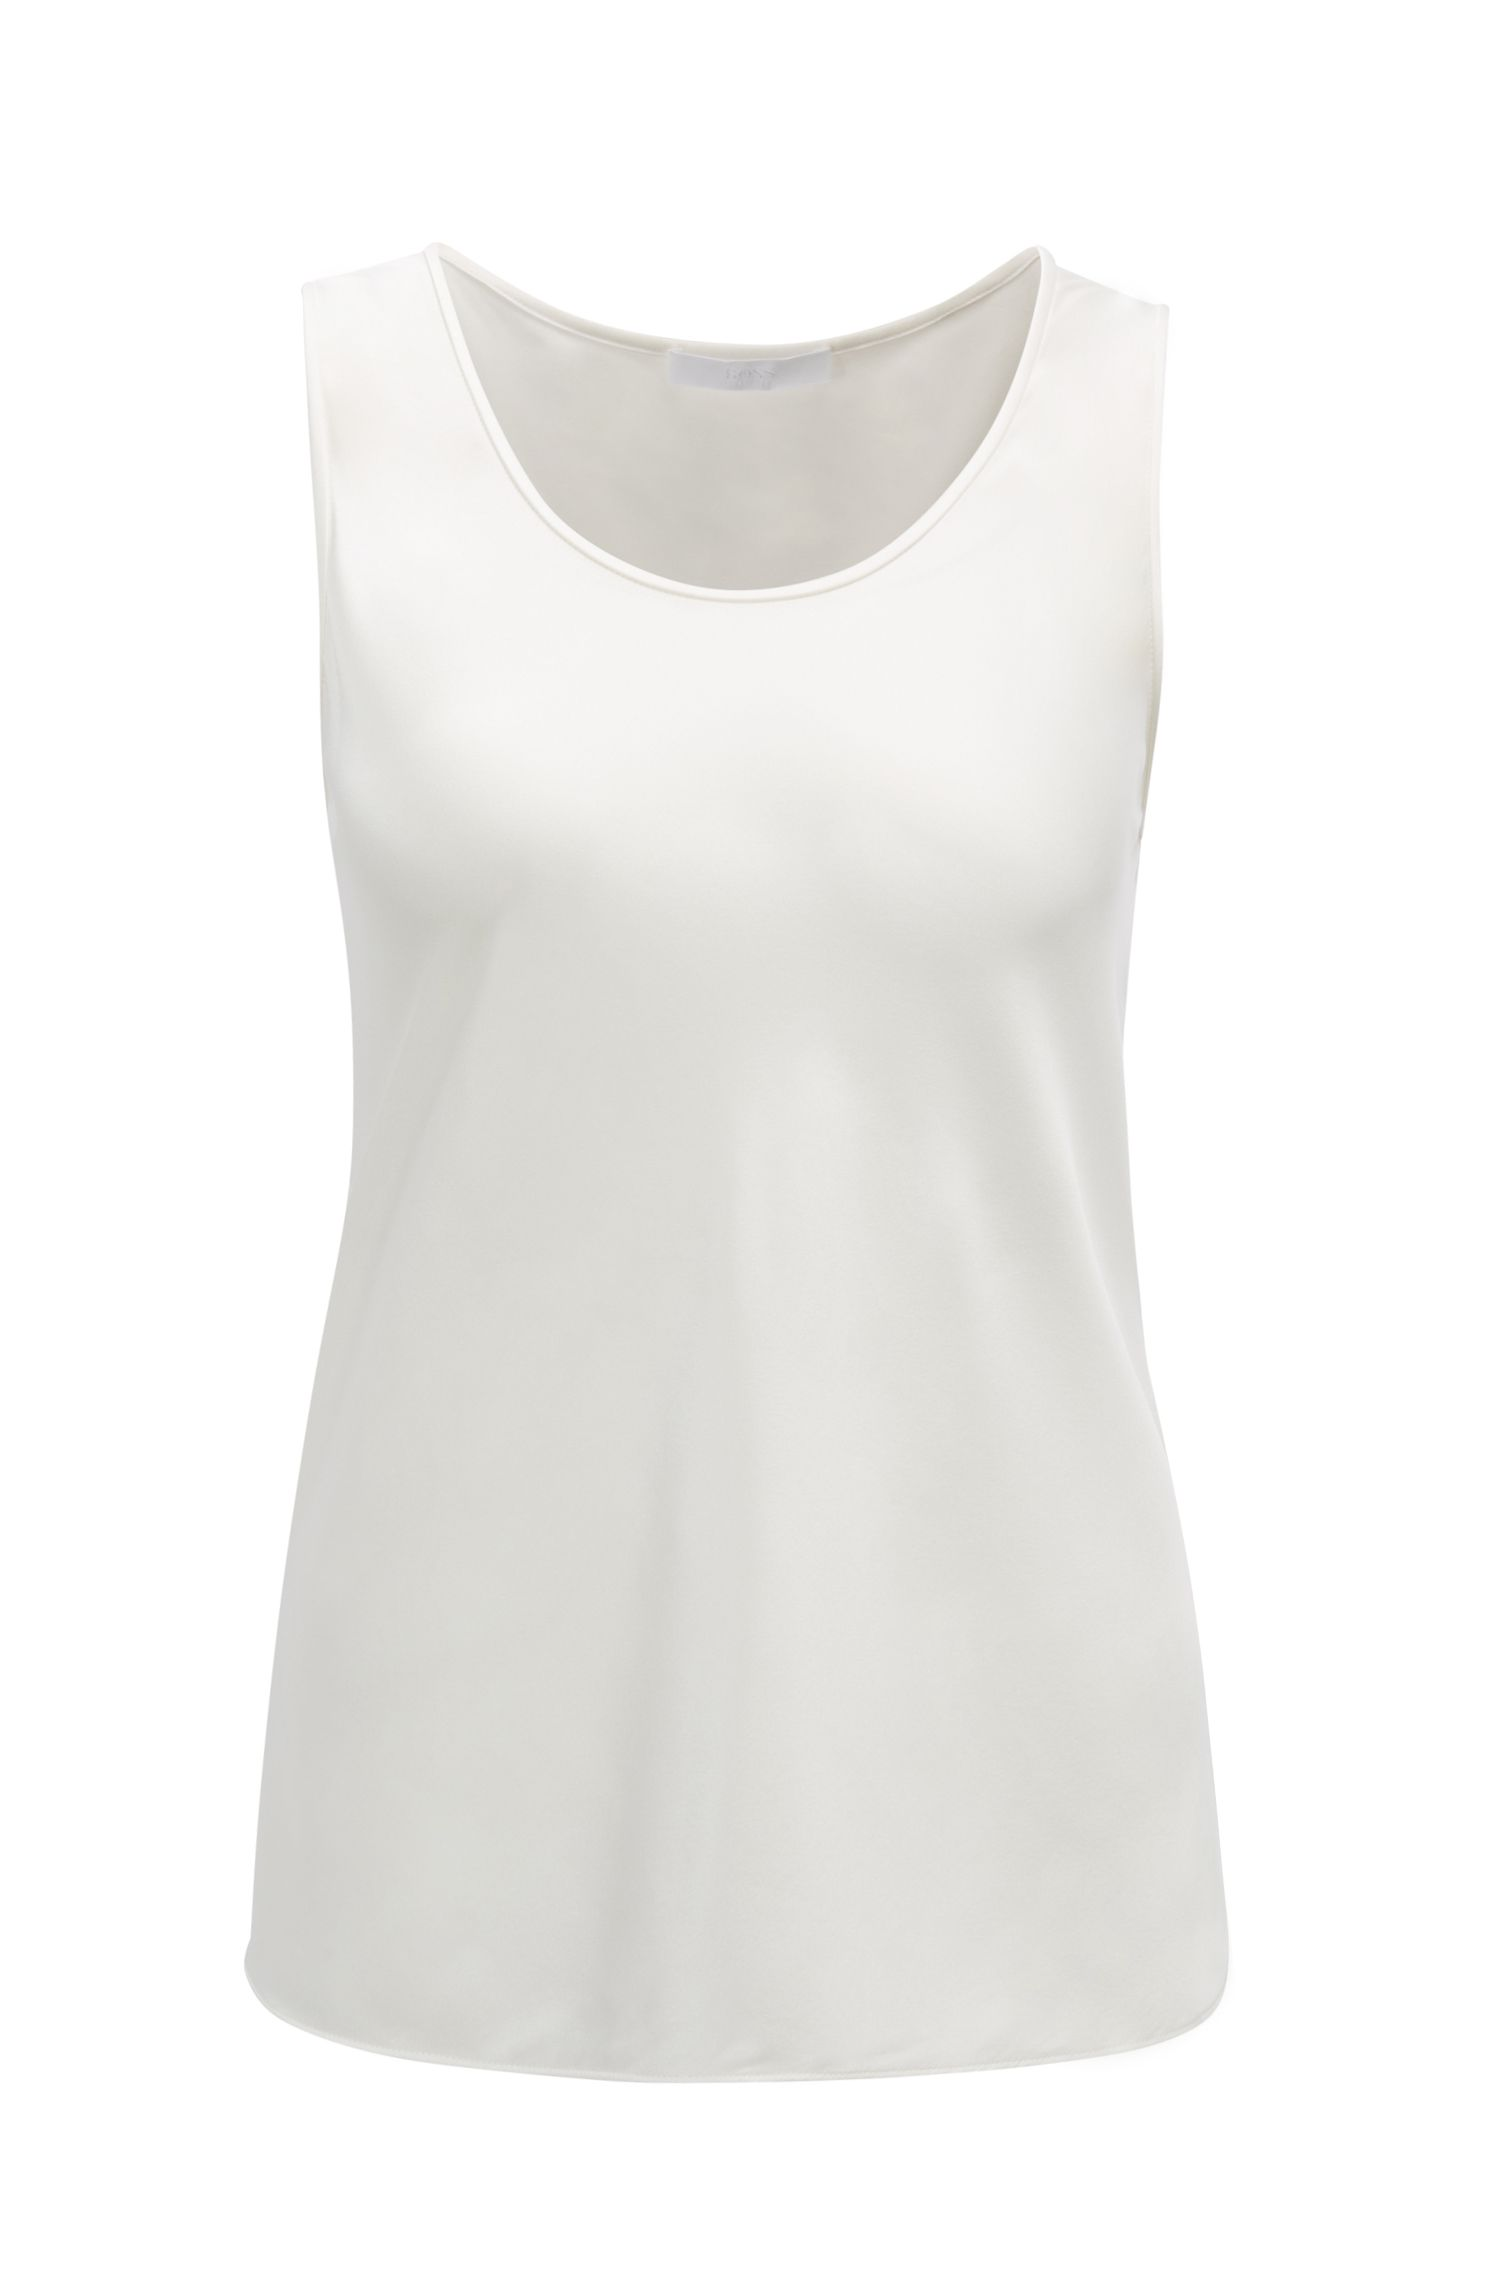 Scoop-neck sleeveless top in stretch silk, Natural